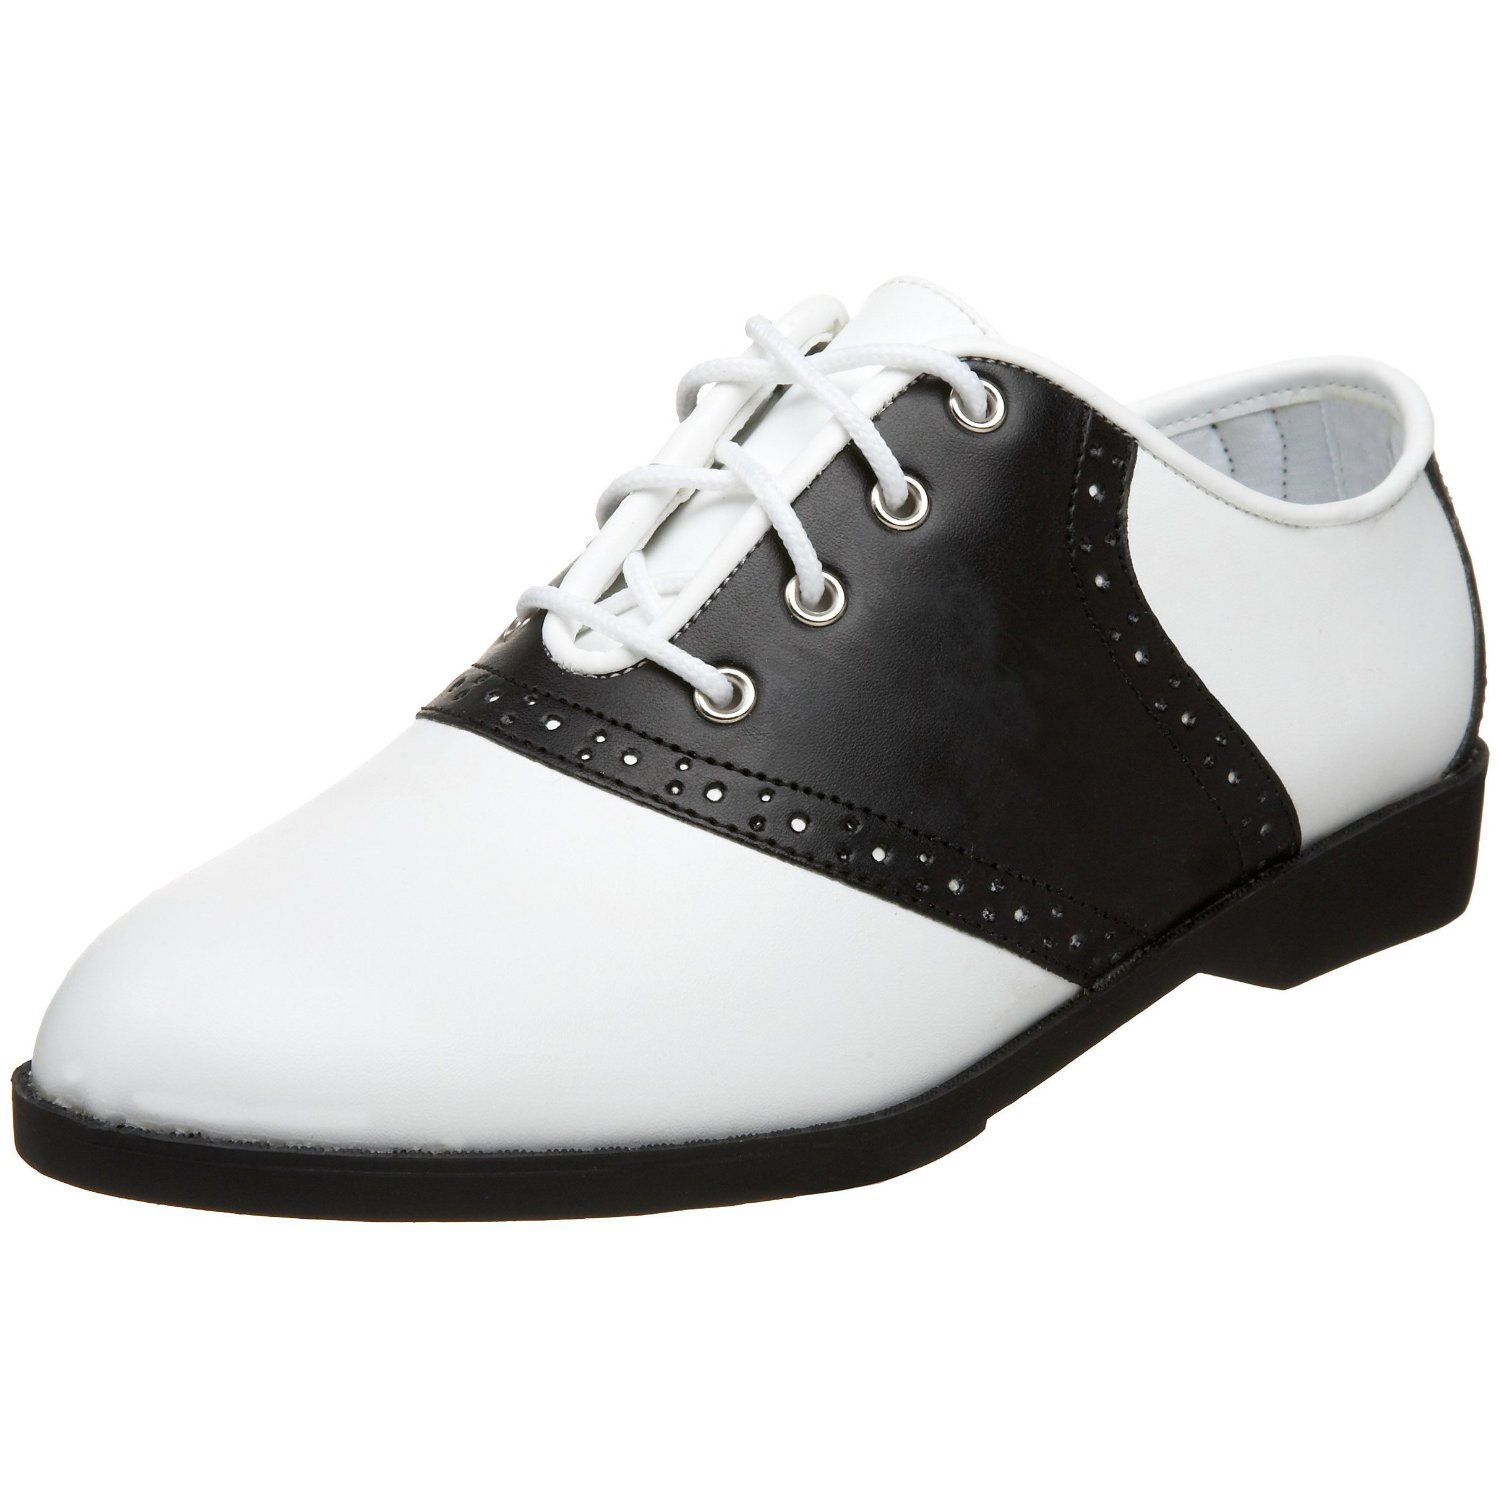 10 Popular 1940s Shoes Styles for Women Ladies Saddle Shoes 1950s Costume Shoes 1950s Saddle Shoes White/Black $29.88 AT vintagedancer.com